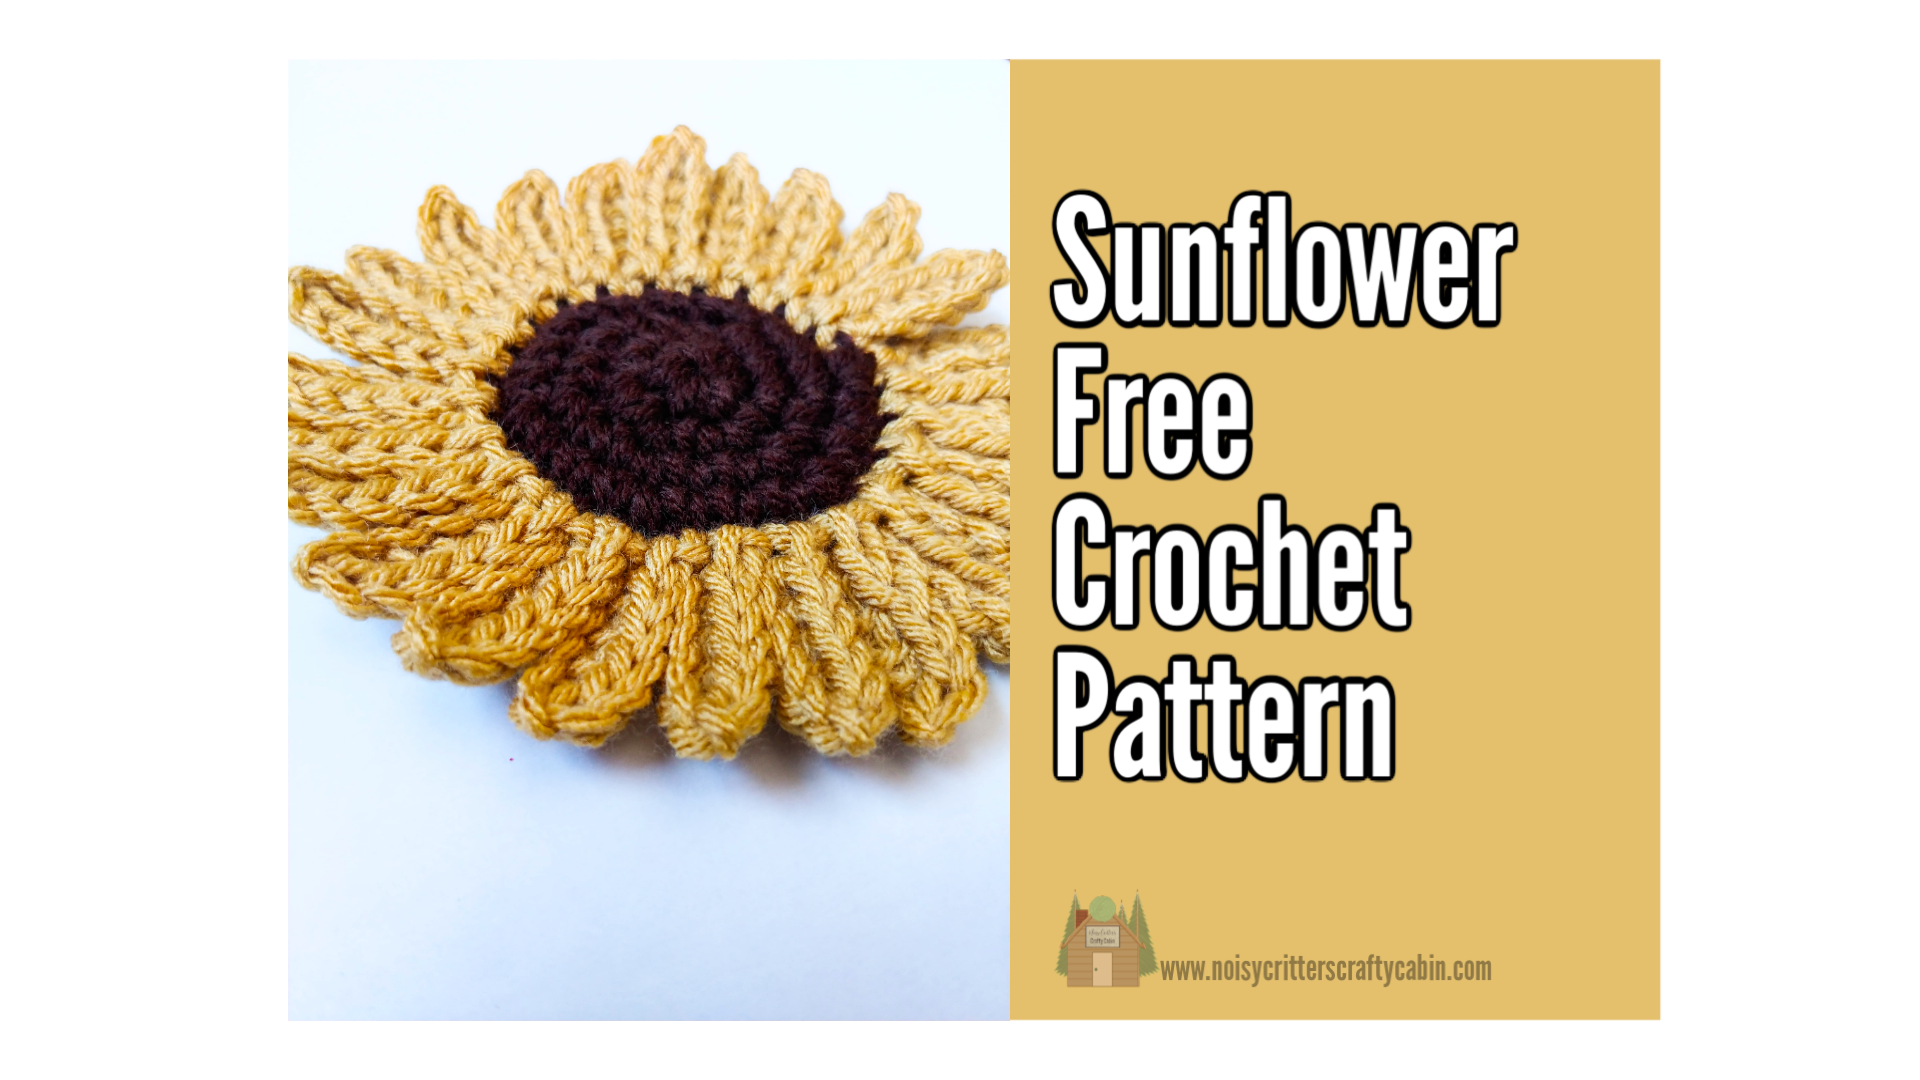 Sunflower Free Crochet Pattern